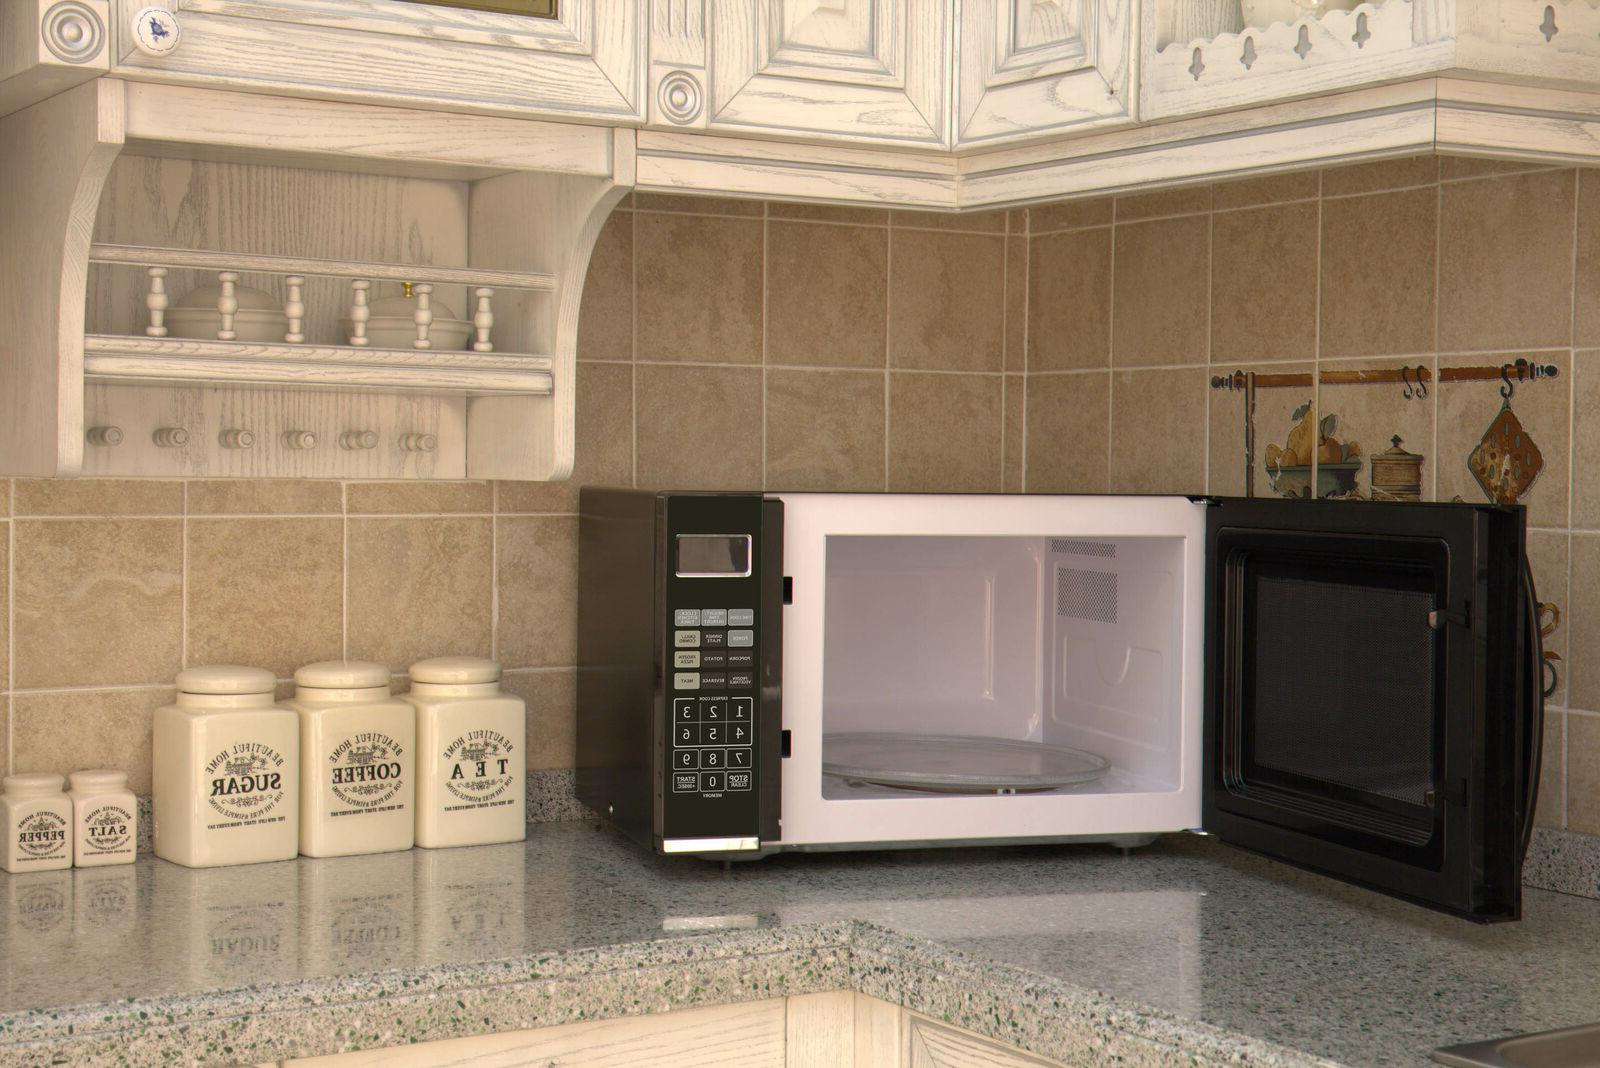 Microwave 1.2 Cu Ft Cooking Turkey 1100W